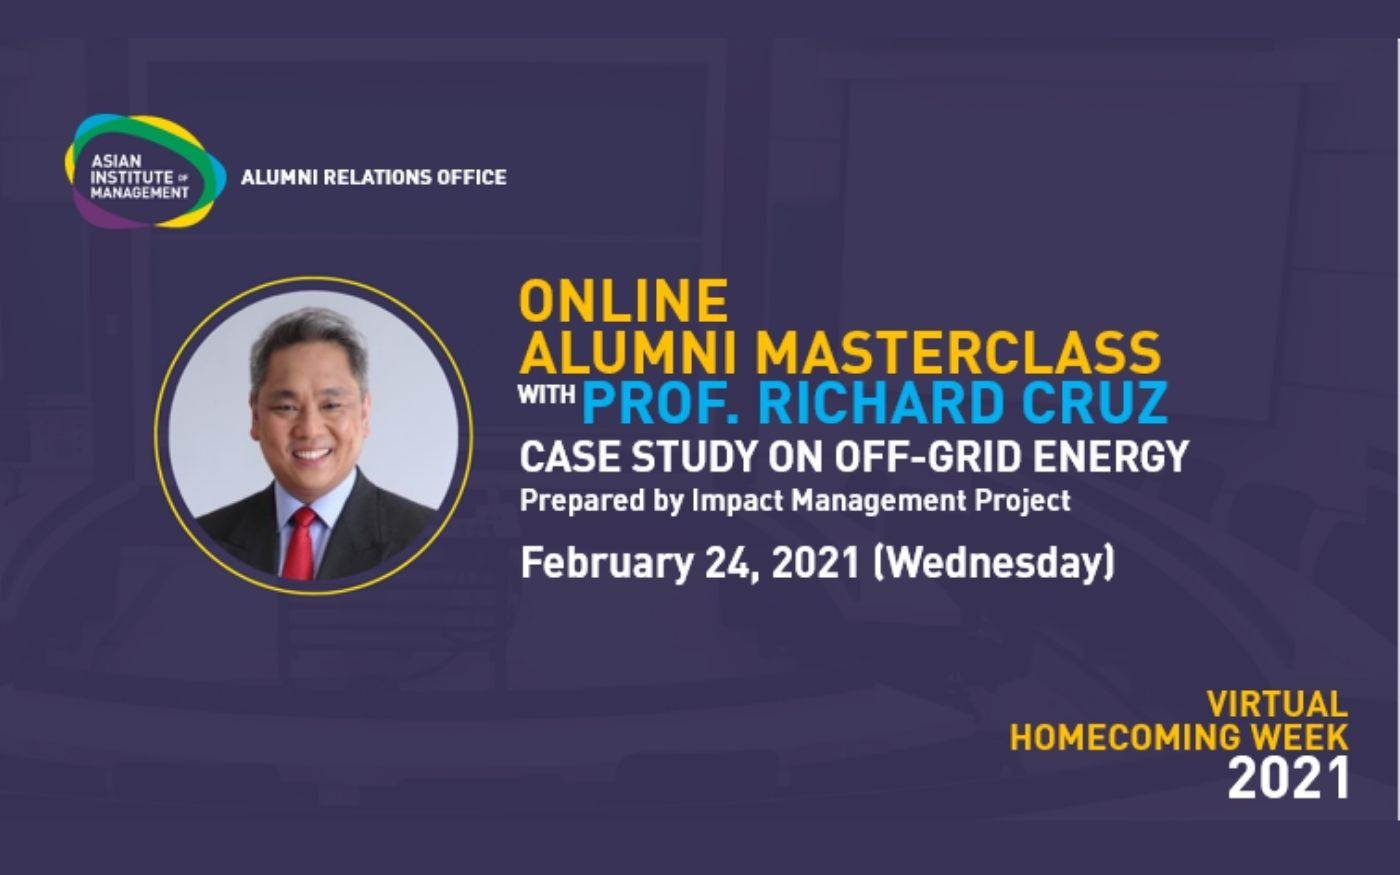 Online Alumni Masterclass with Prof. Richard Cruz